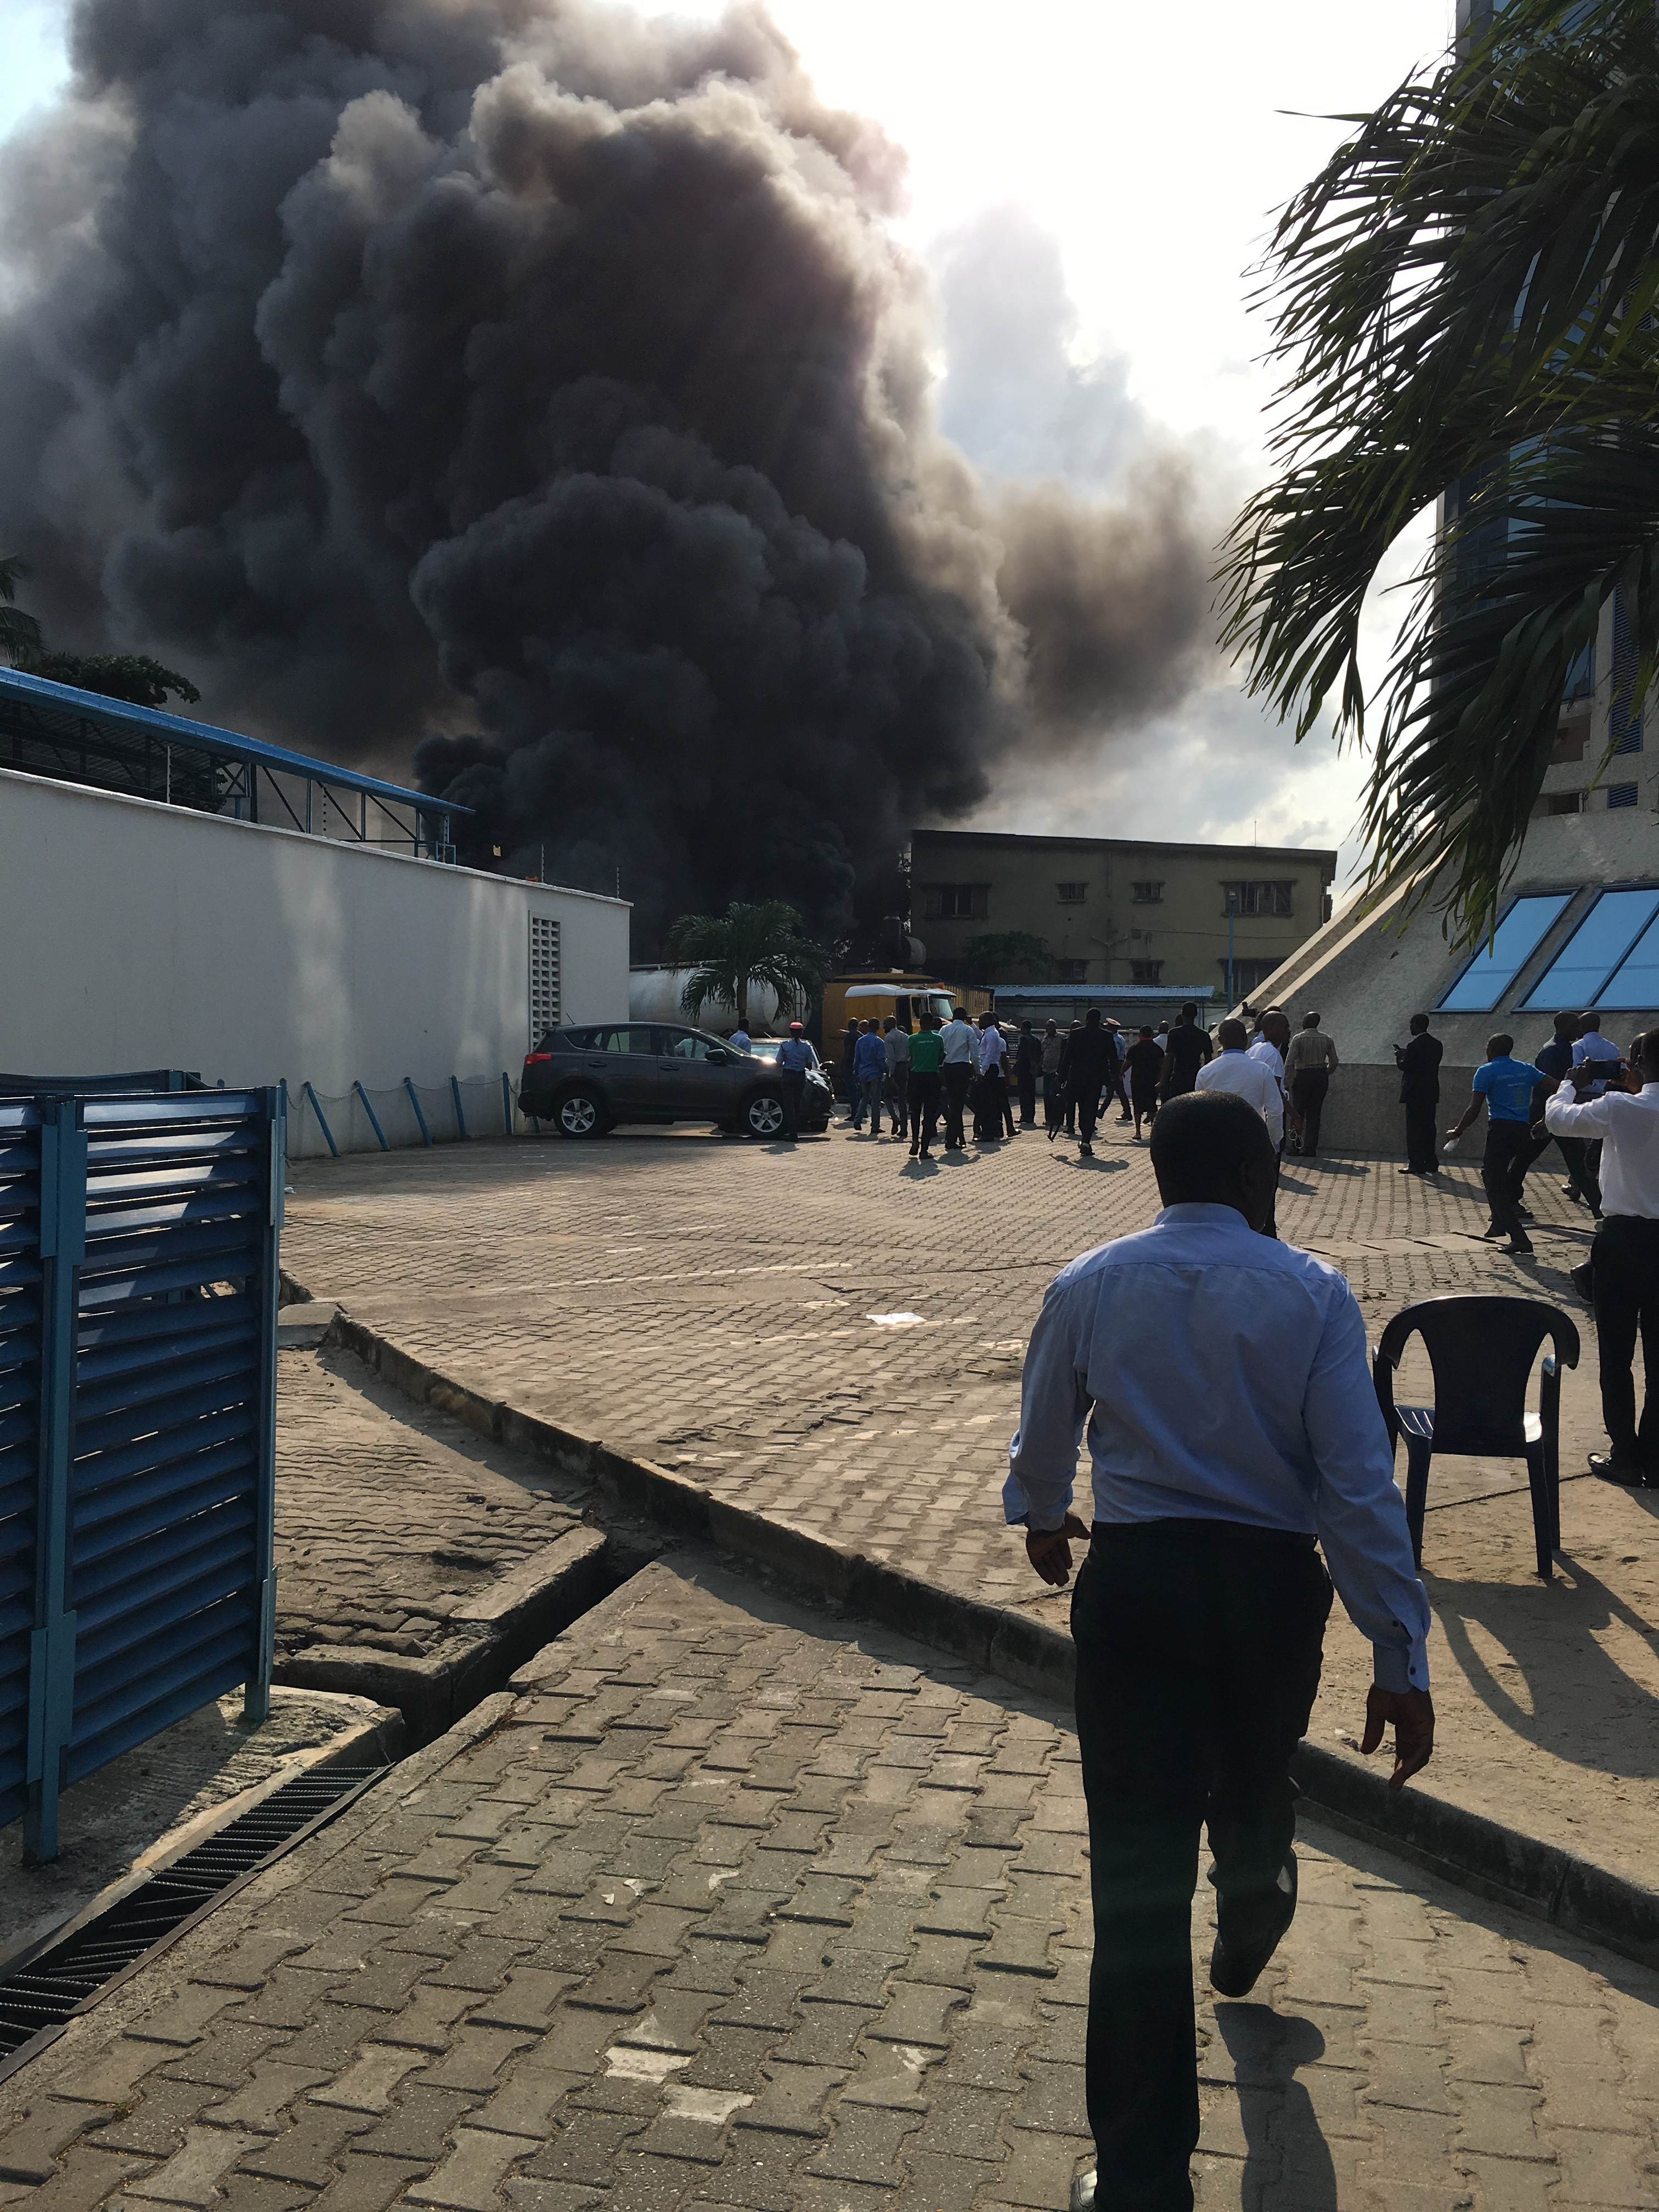 Fire outbreak around EcoBank Head Office in Victoria Island this morning